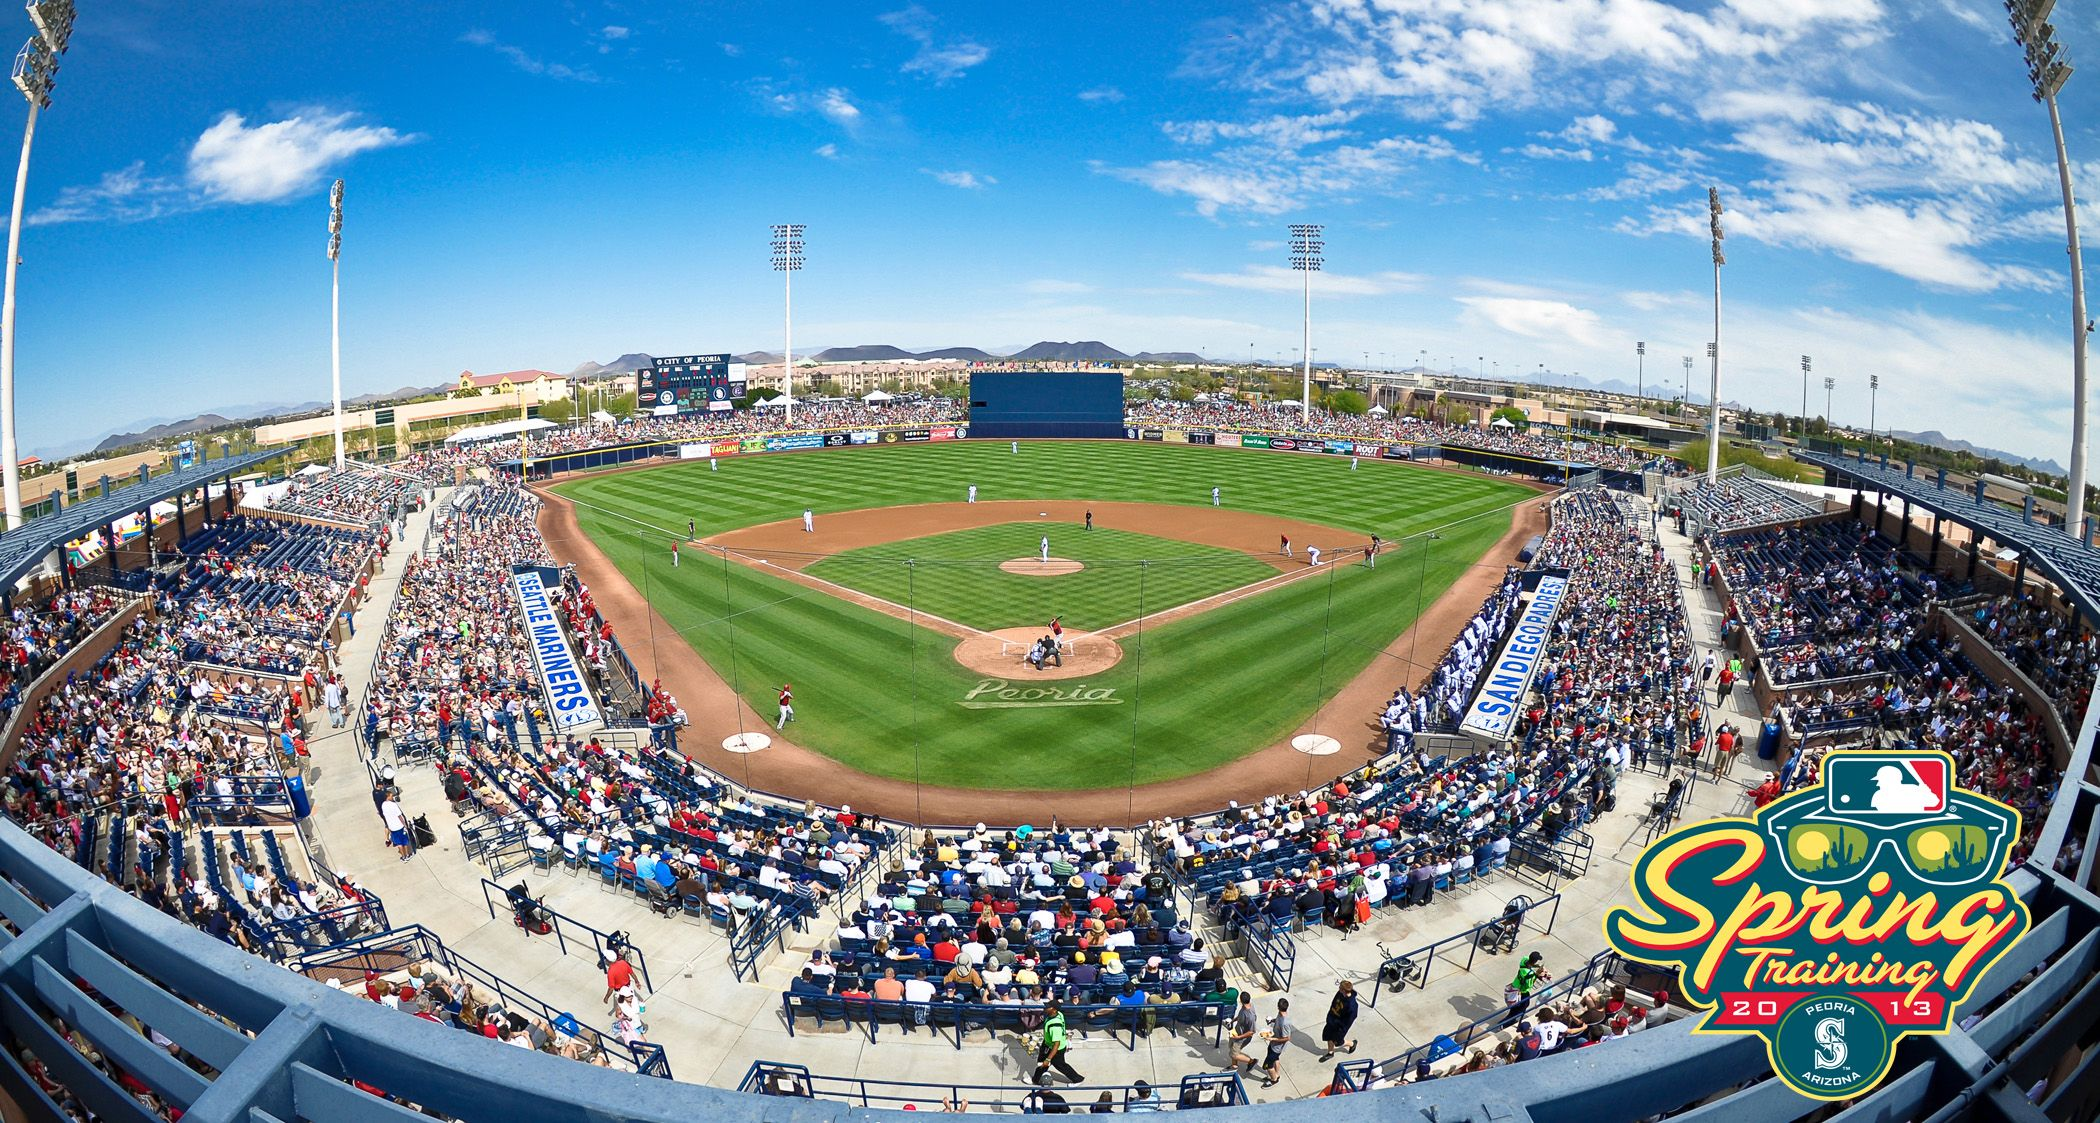 SPRING TRAINING!!! IT'S ALMOST HERE!! The Mariners will be